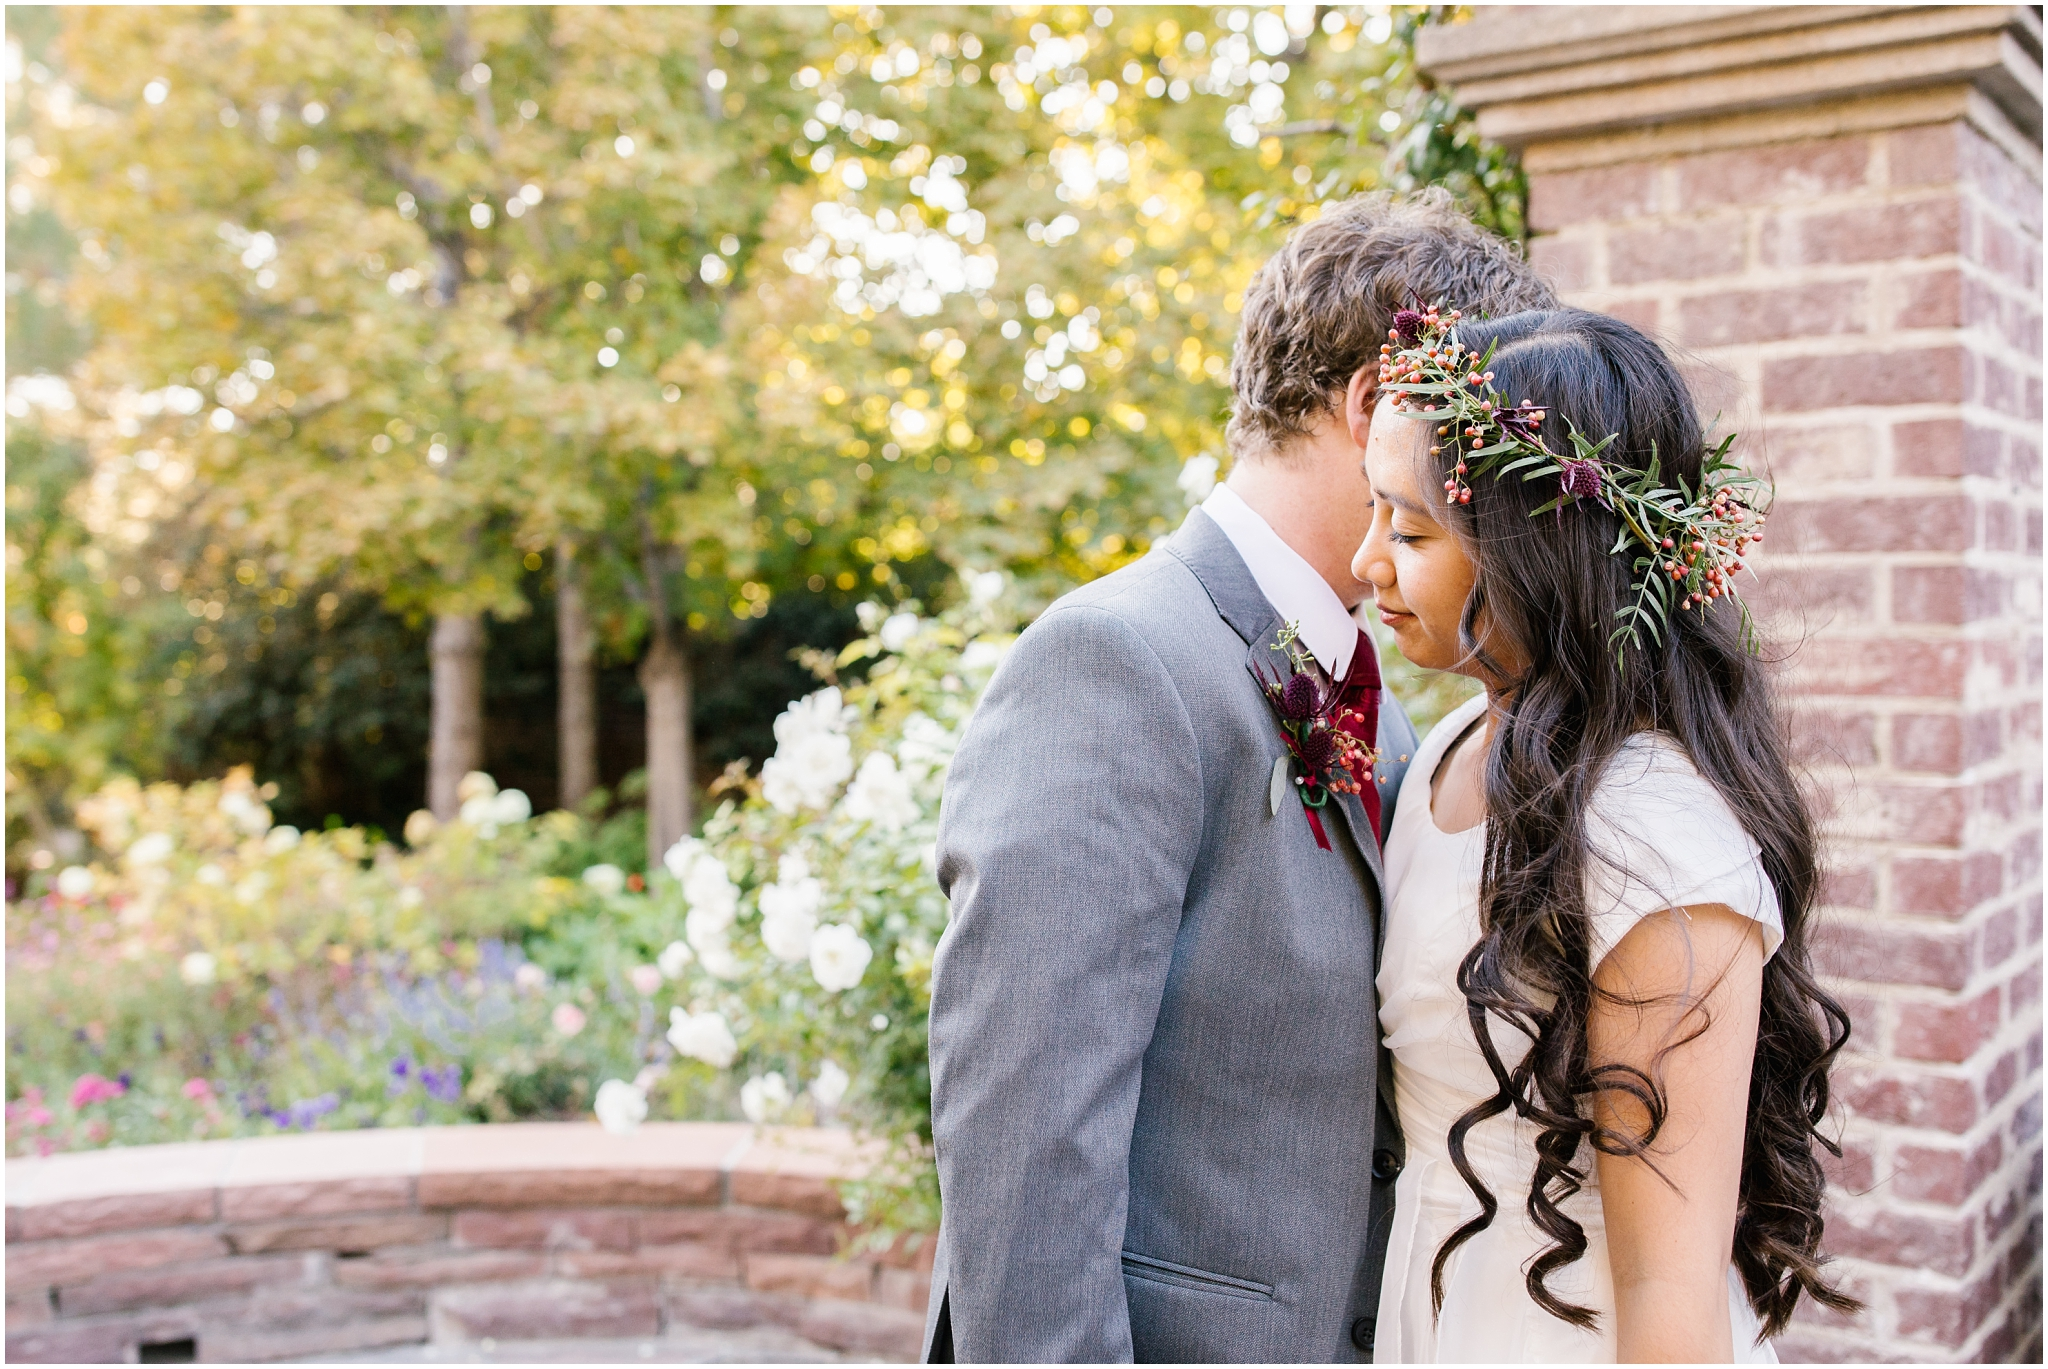 JB-Bridals-42_Lizzie-B-Imagery-Utah-Wedding-Photographer-Utah-County-Thanksgiving-Point-Ashton-Gardens.jpg